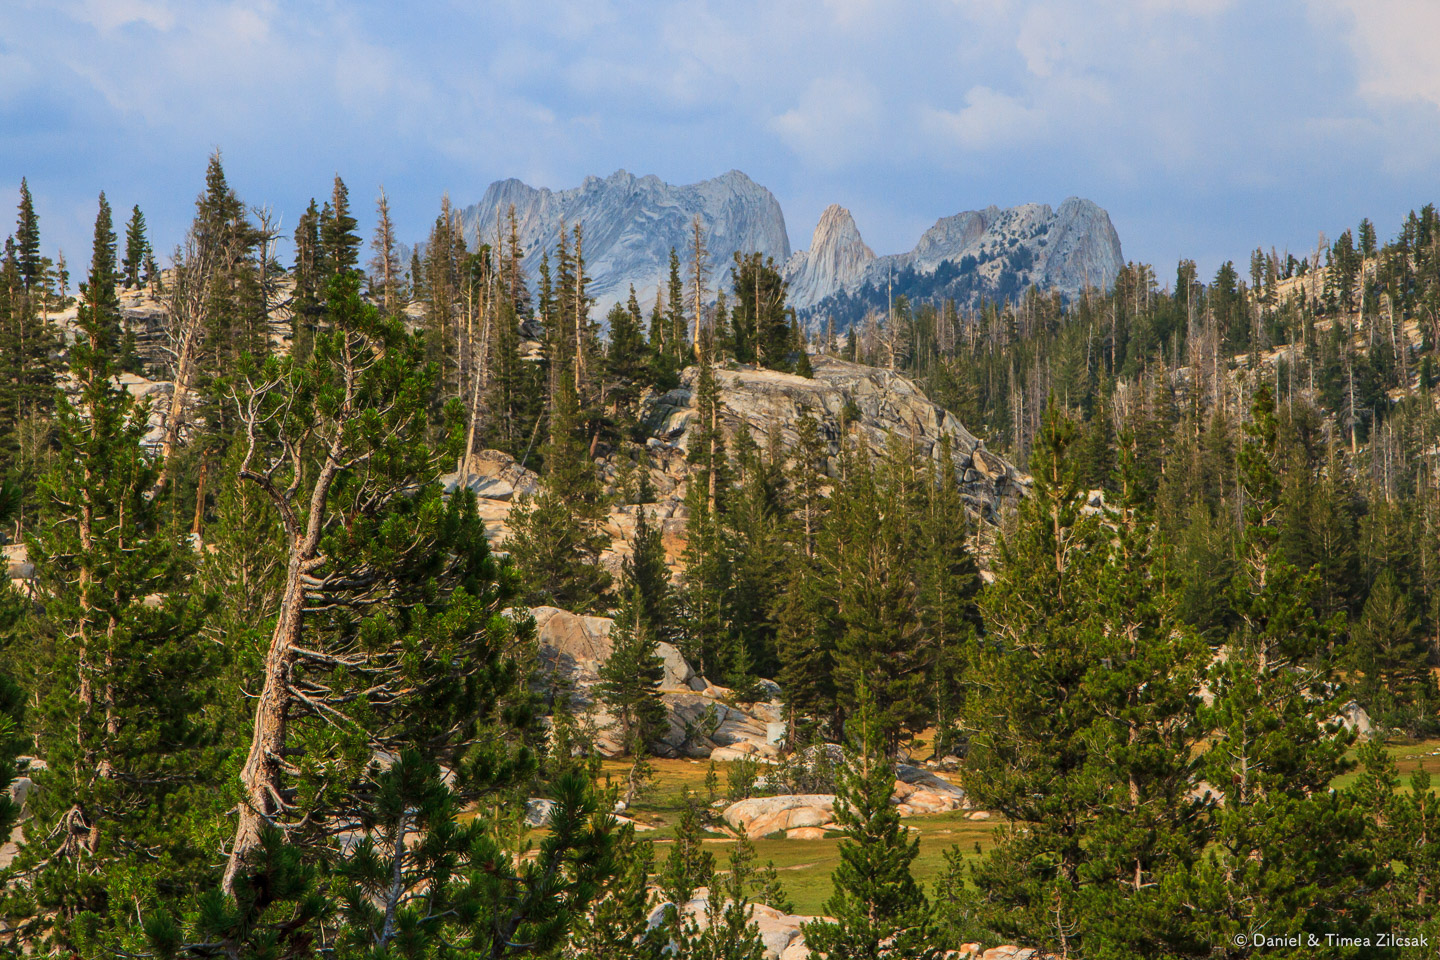 View of Cathedral Range at sunset from Sunrise Camp, Backpacking